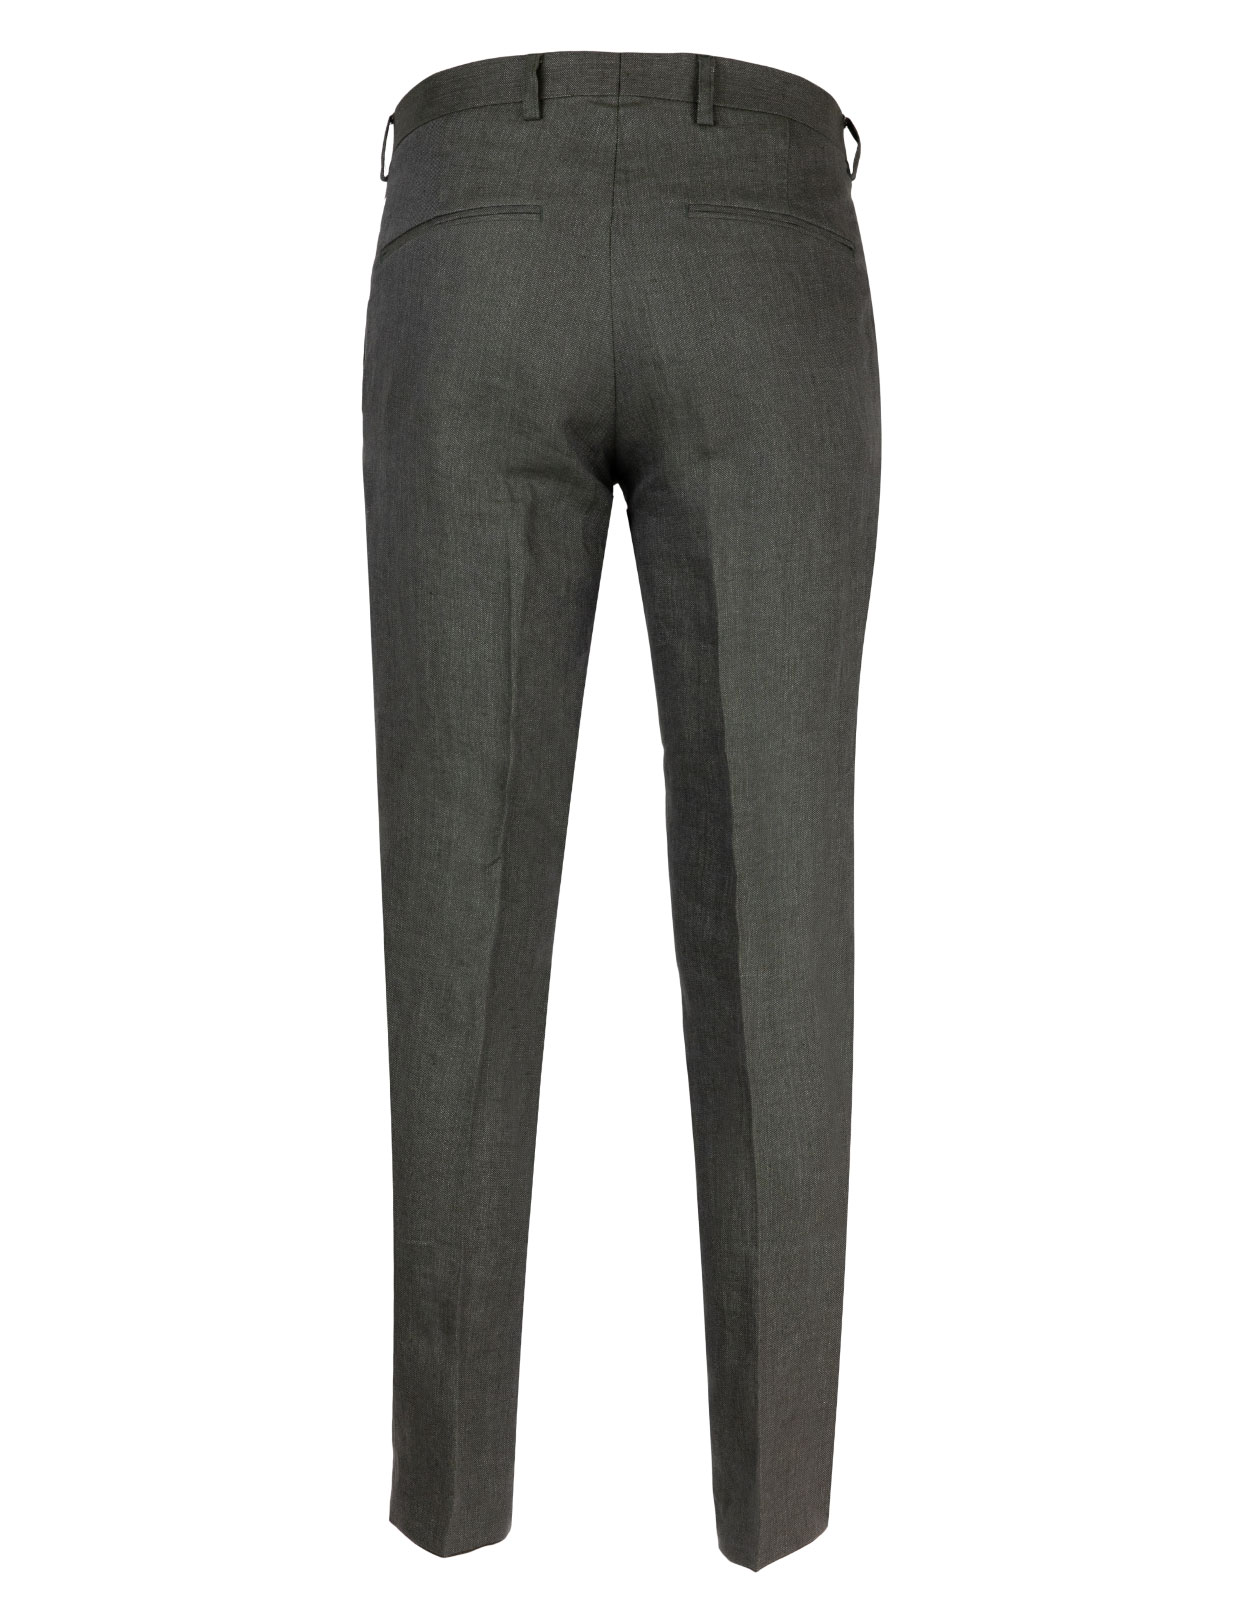 Diego Regular Fit Trouser Mix & Match Green